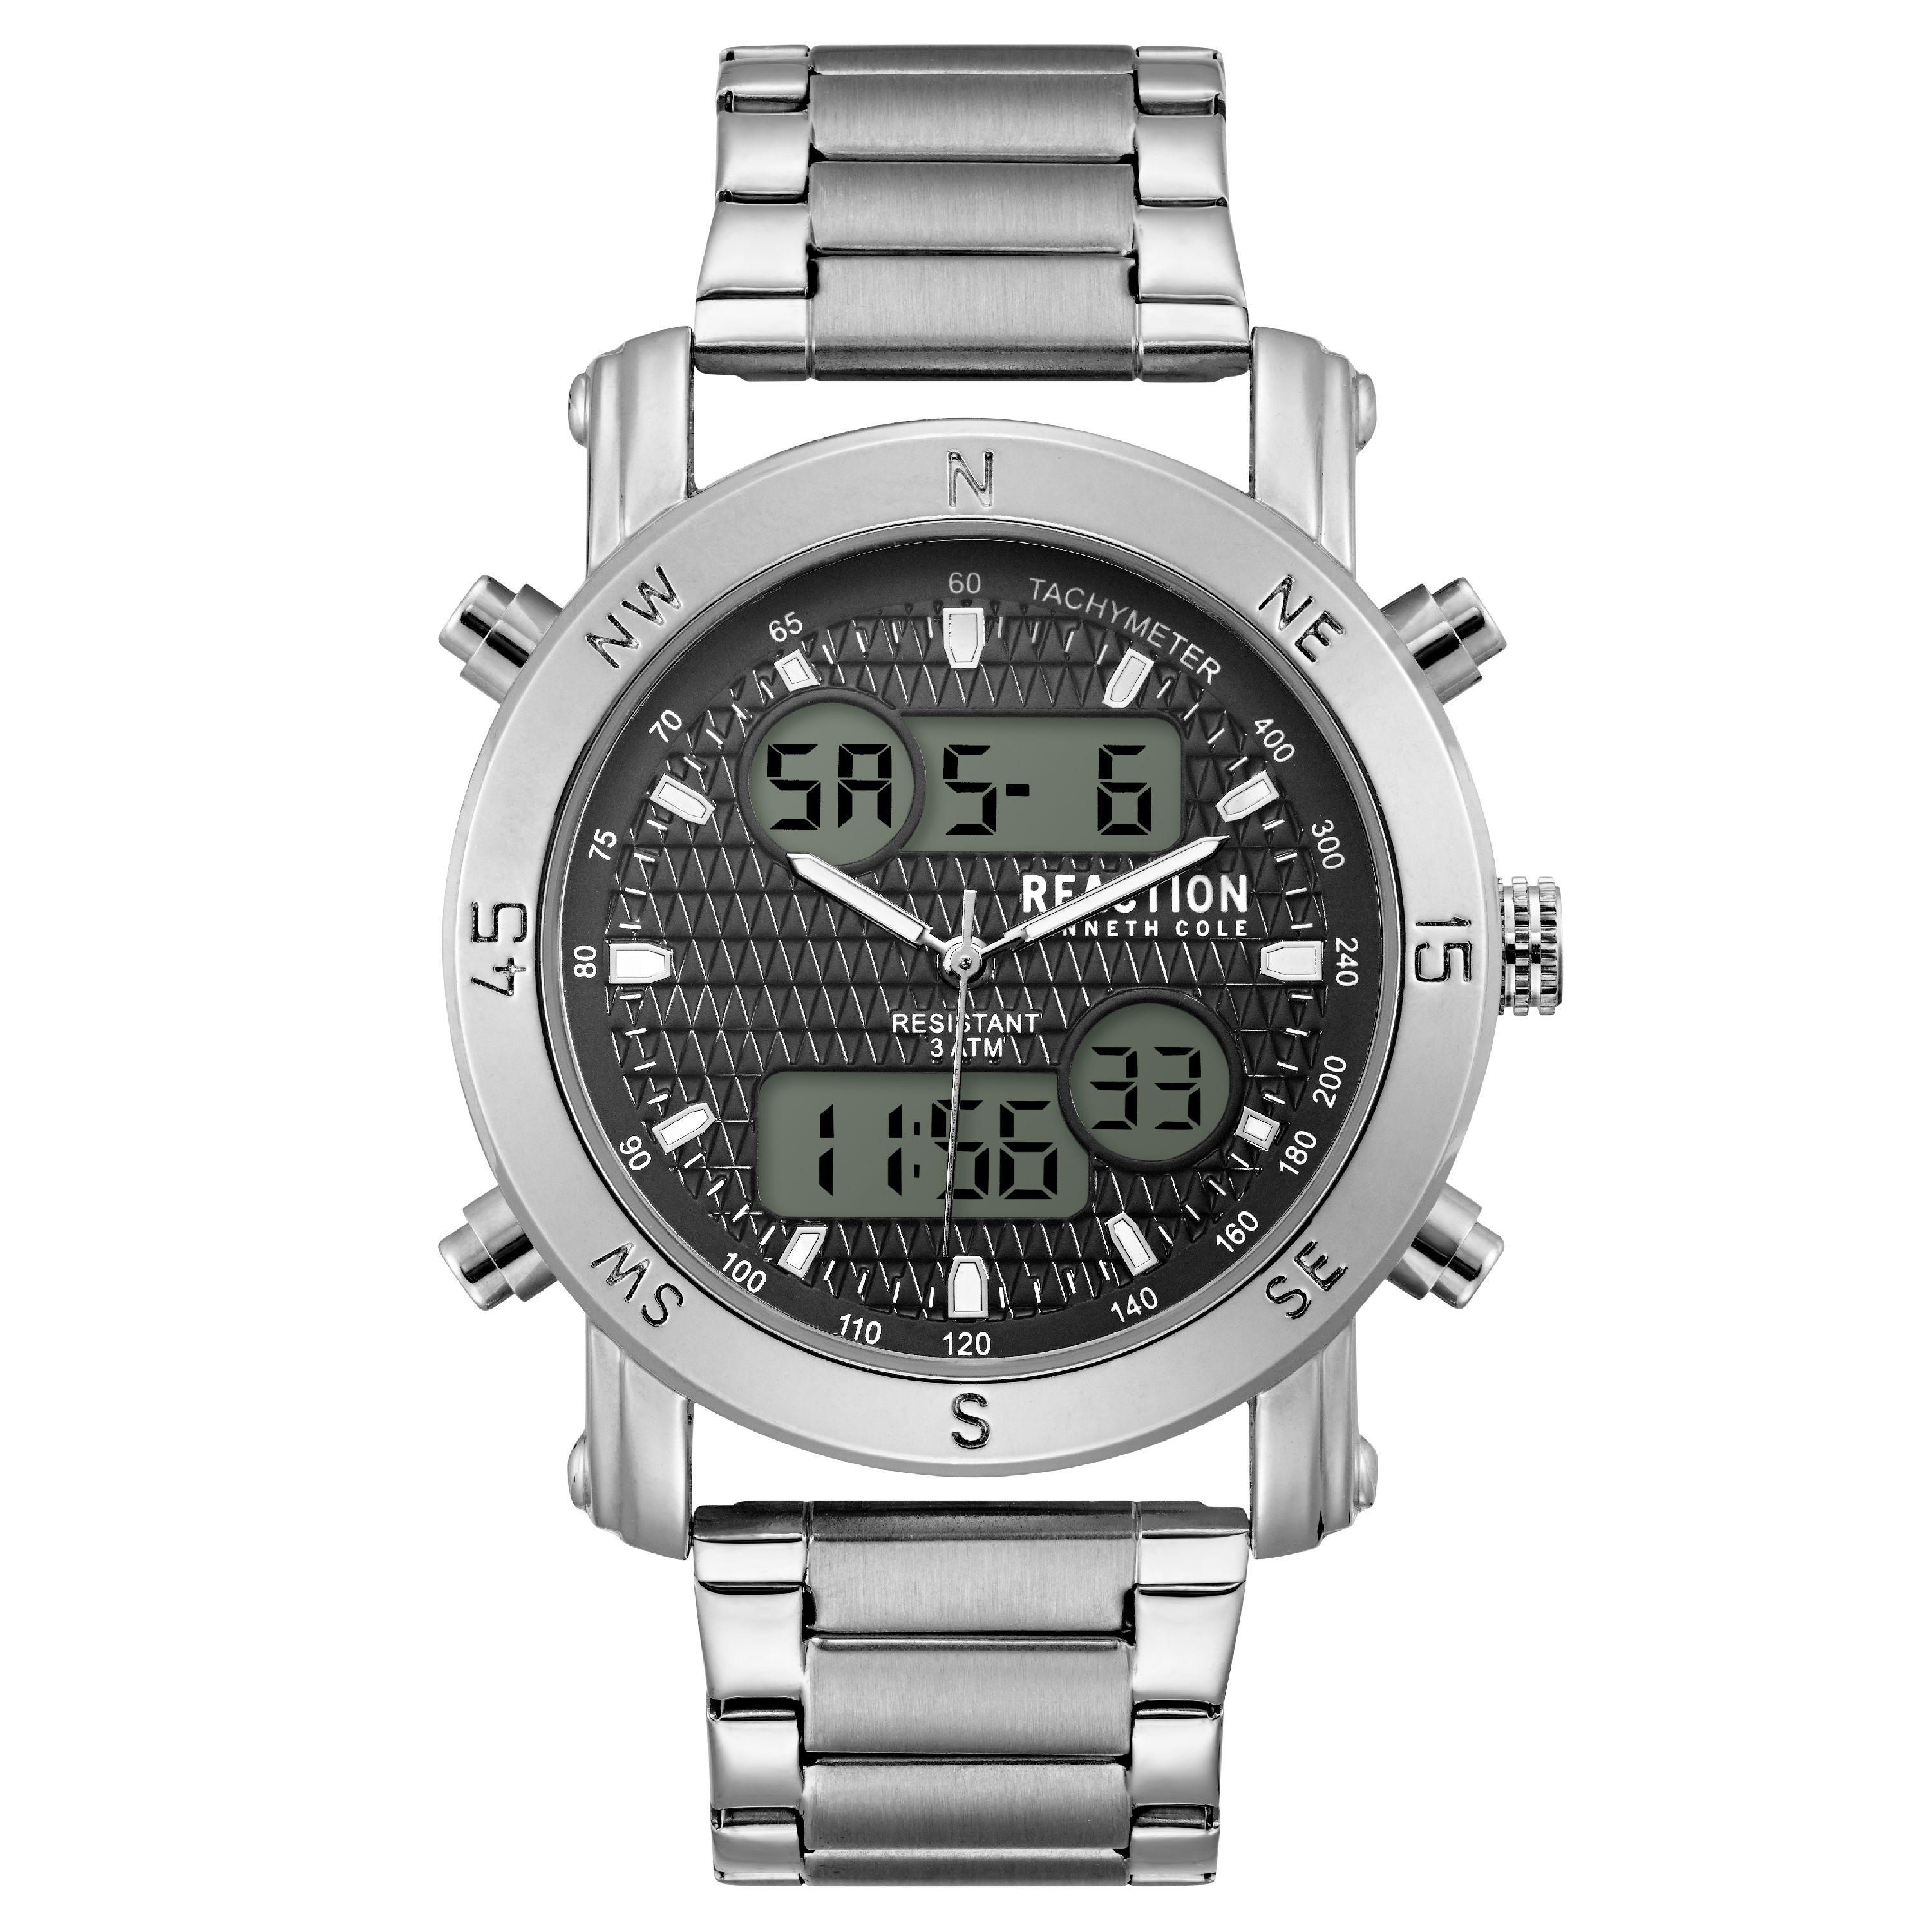 21e8a7cedb0 Kenneth cole reaction kenneth cole reaction mens silver case black dial  silver bracelet watch jpeg 450x450